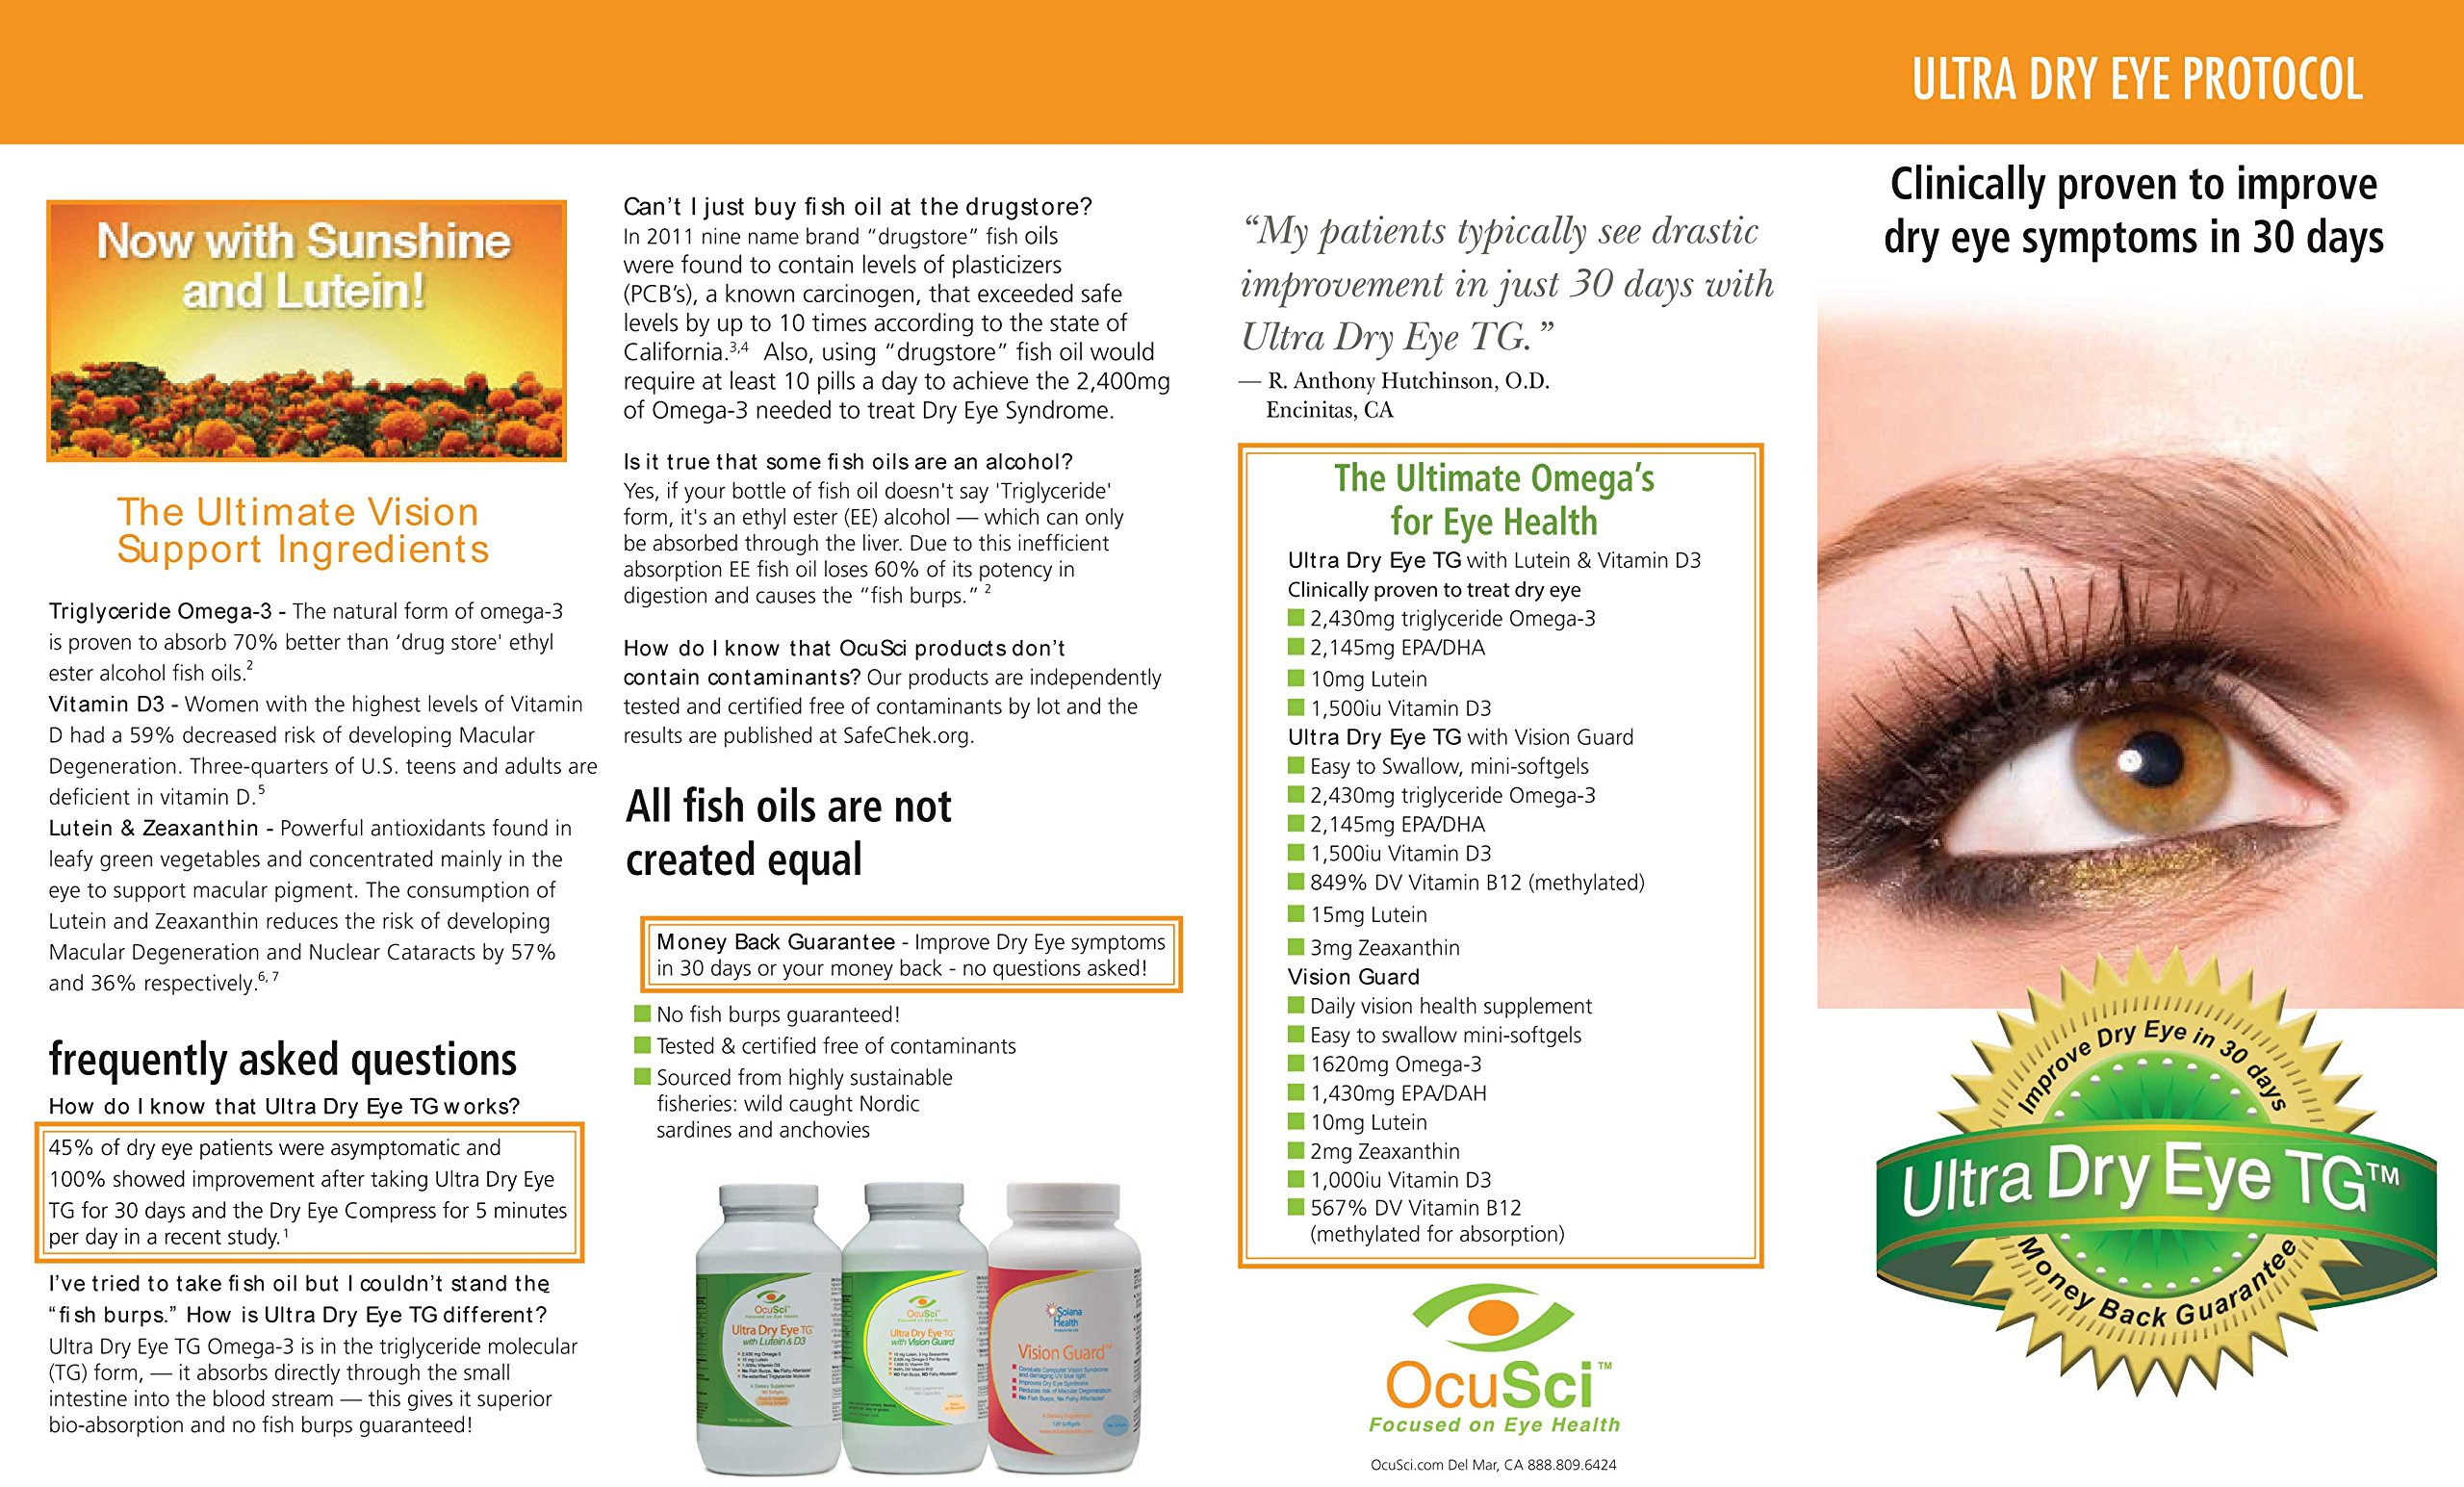 Formulated for Dry Eyes - #1 Optometrist Recommended - Money Back Guarantee - 6 Month Supply. Ultimate Vision Health Ingredients: 2,036mg Omega-3, 100mg Omega-7, 10mg Lutein, 1,500IU Vitamin D